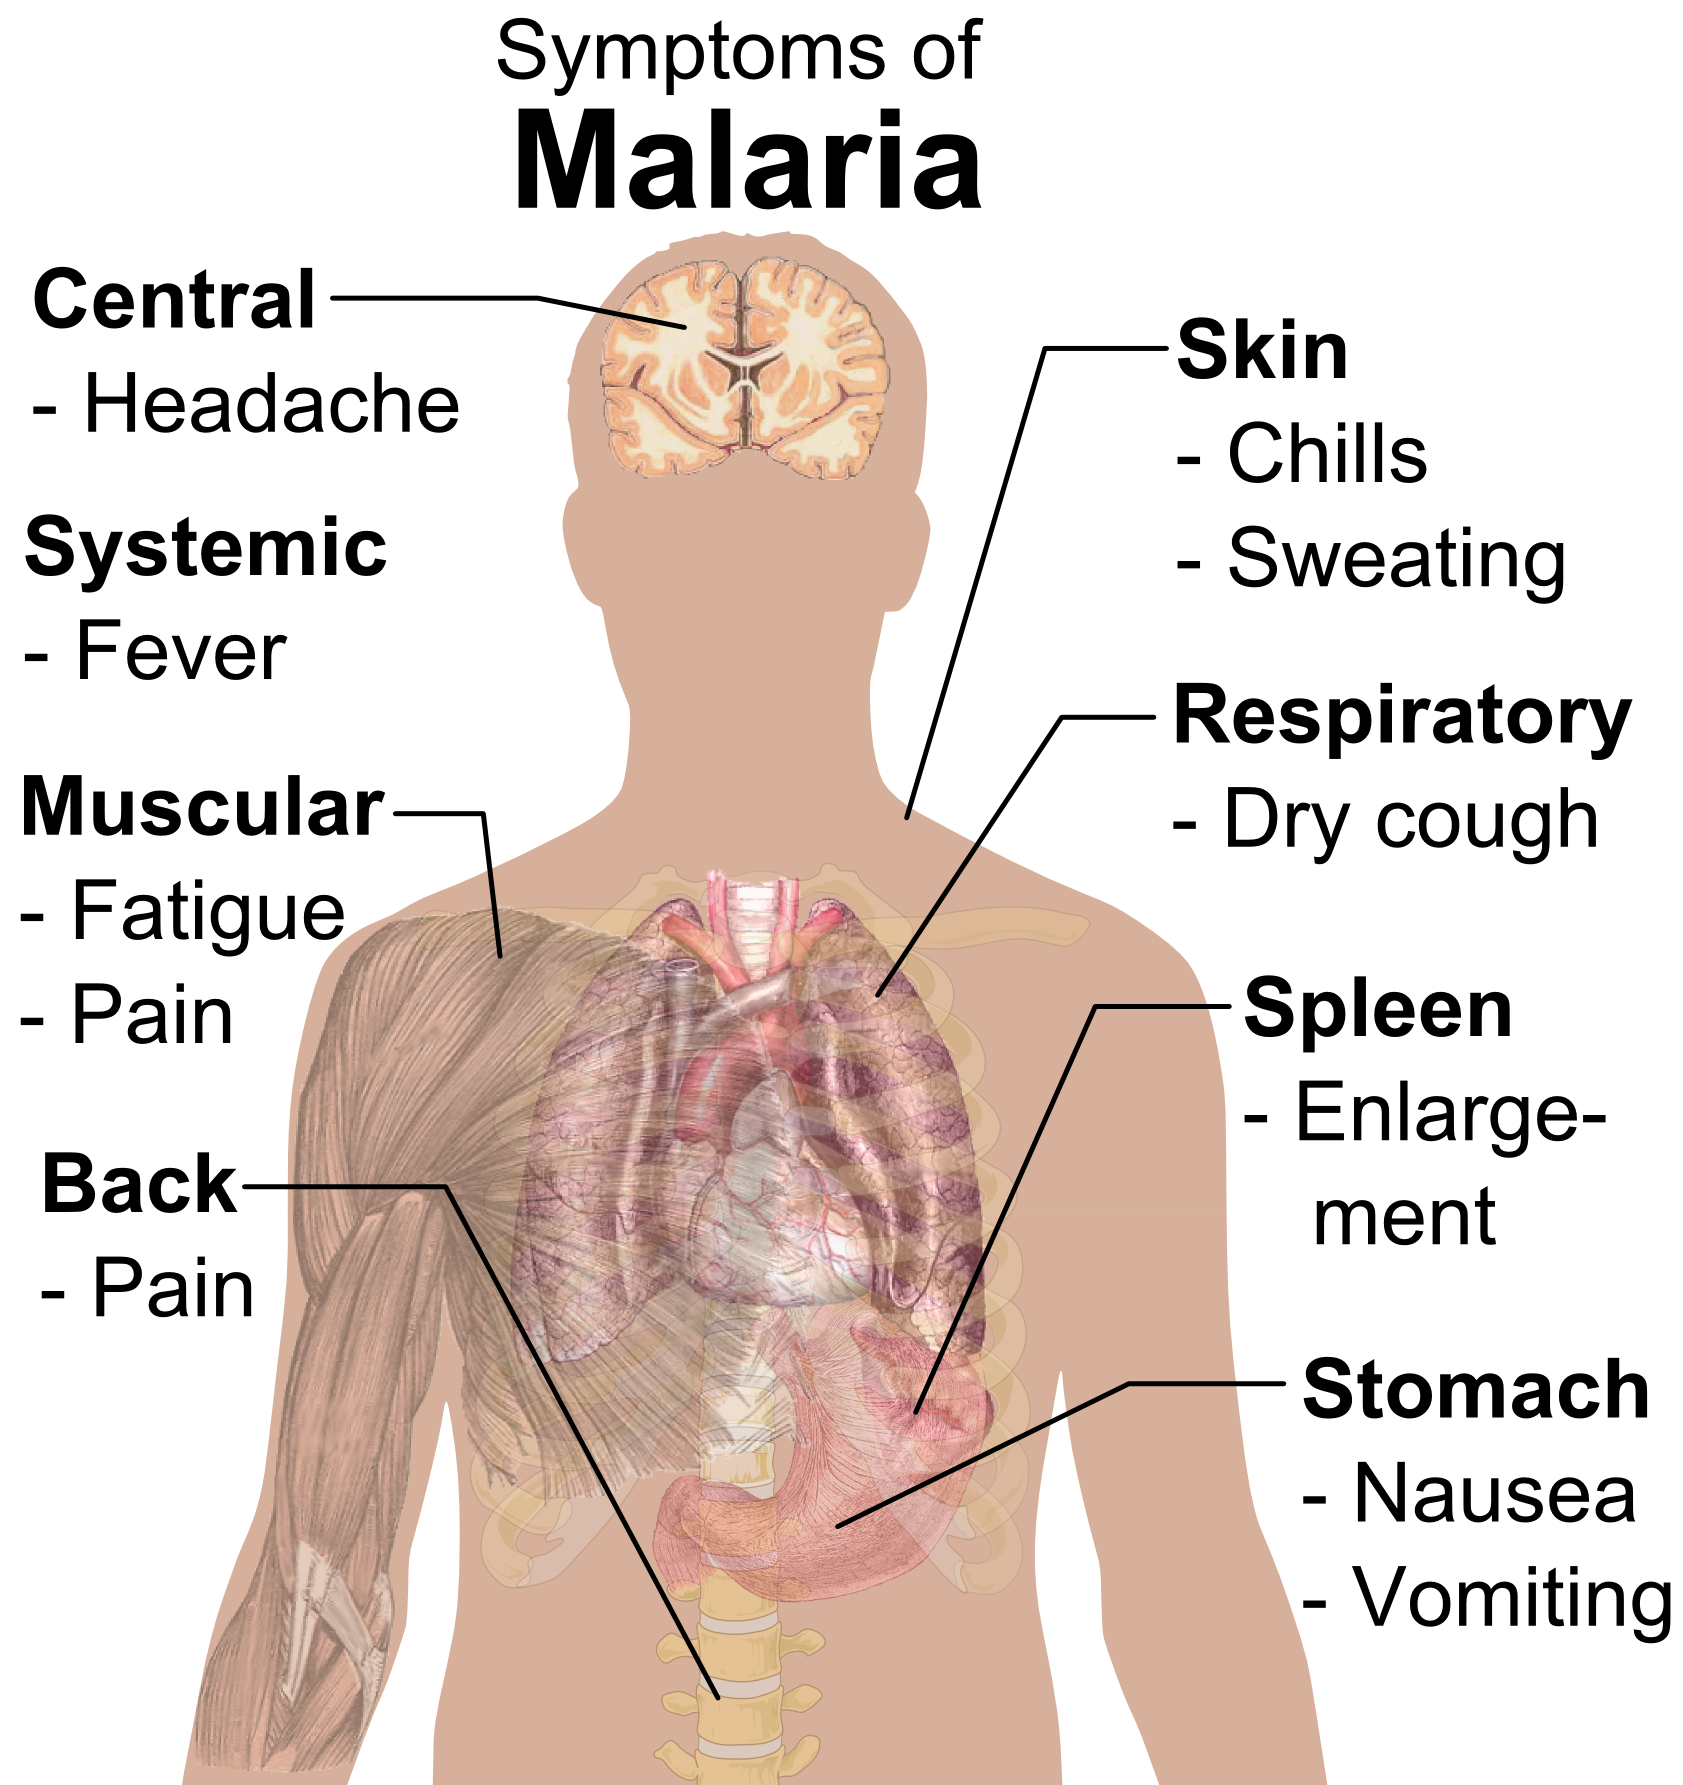 17 best images about malaria doesn t need to be such a great 17 best images about malaria doesn t need to be such a great killer on health vintage illustrations and yellow fever